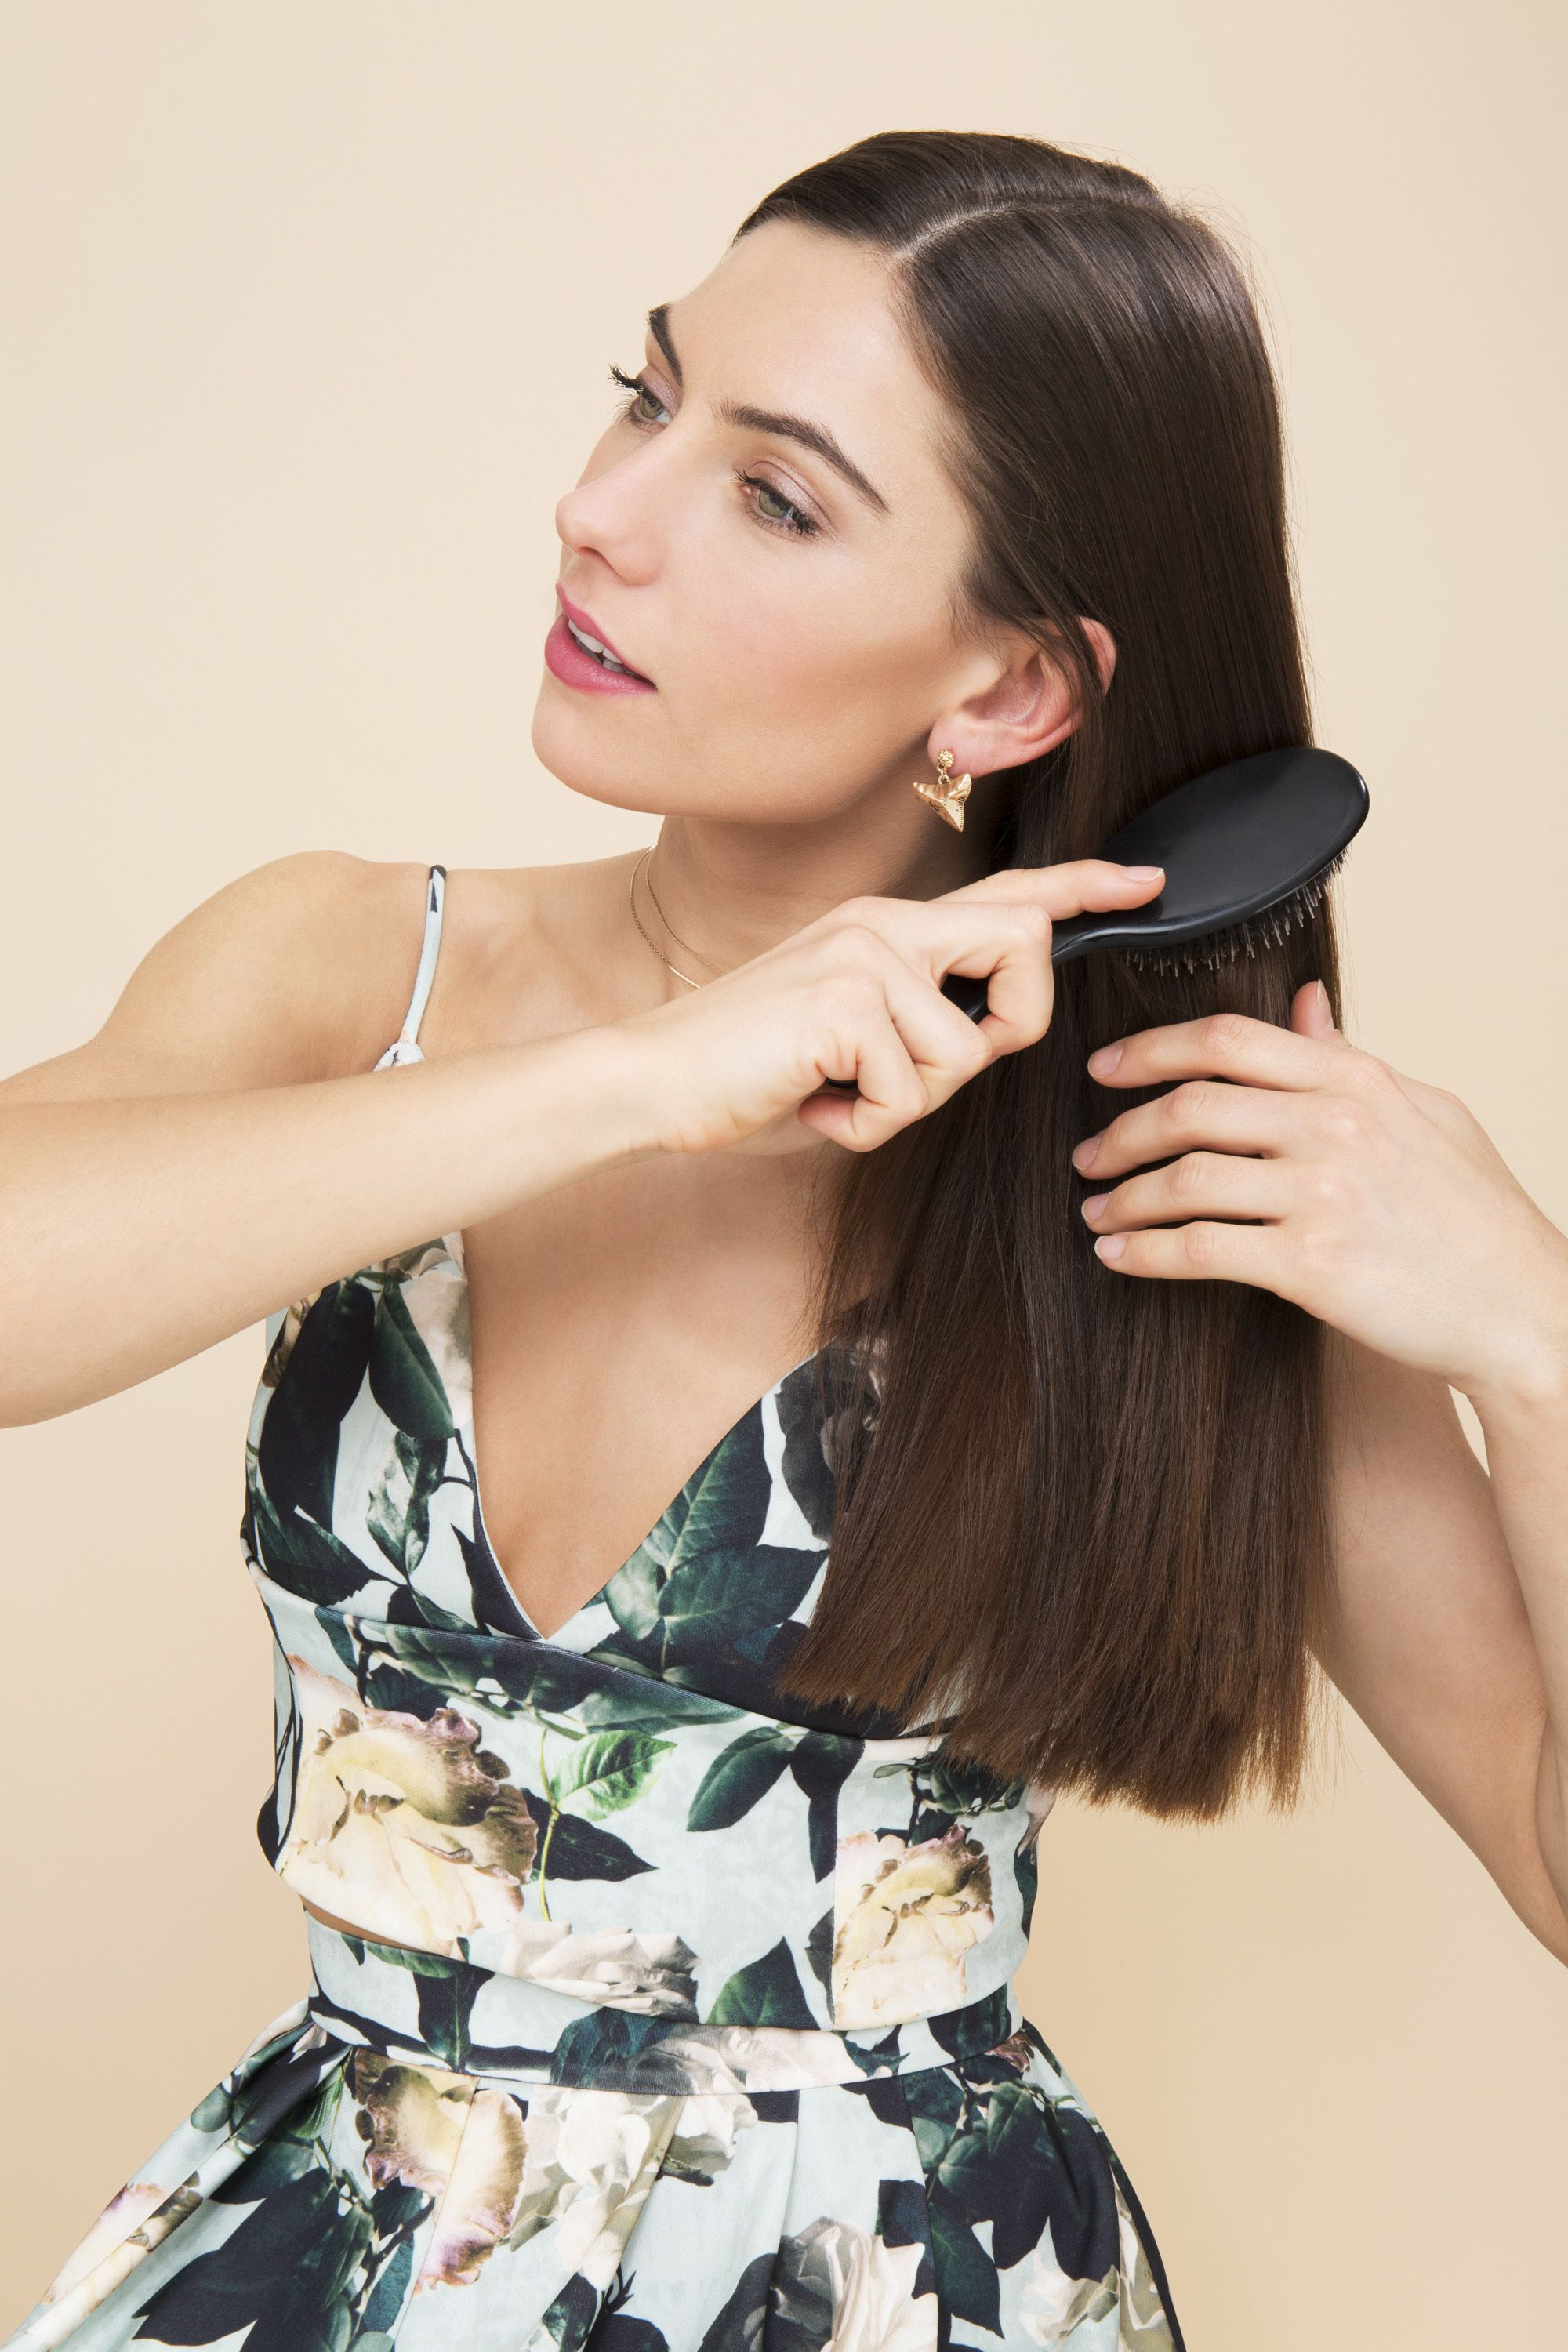 Keratin shampoo and conditioner guide: model brushing her hair after using keratin oil wearing floral dress